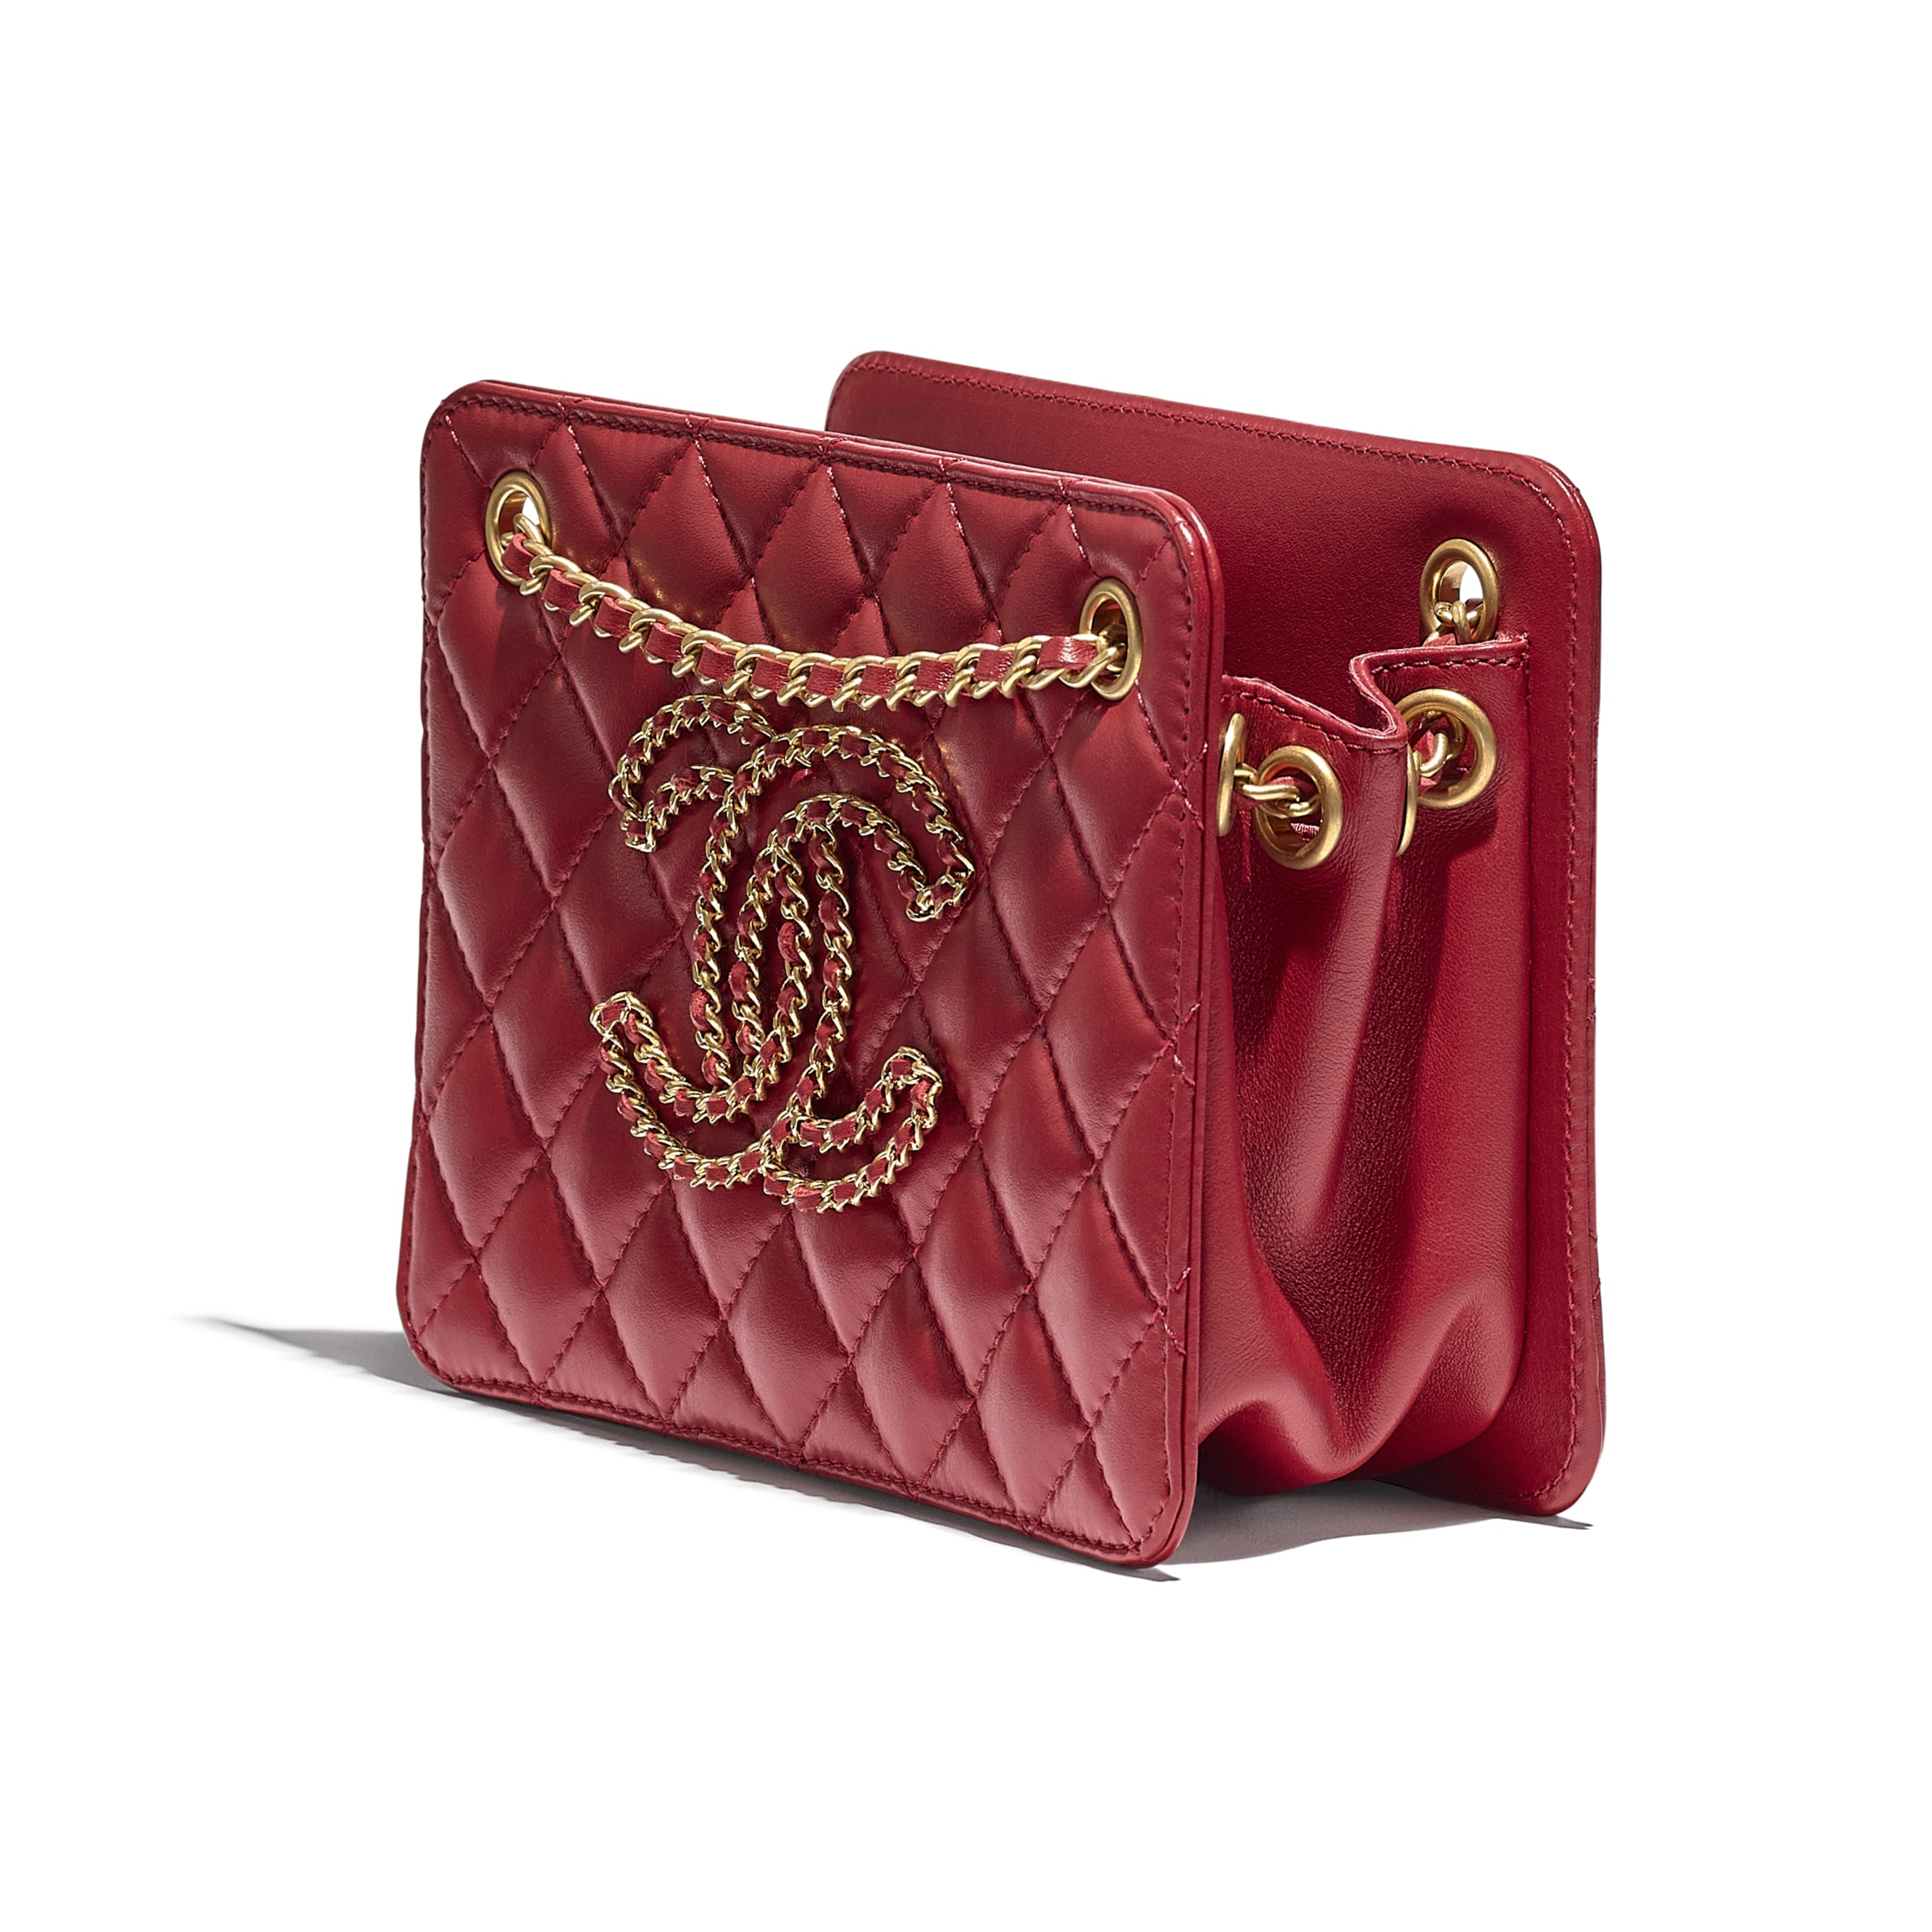 Small Accordion Handbag - Red - Calfskin & Gold-Tone Metal - CHANEL - Extra view - see standard sized version